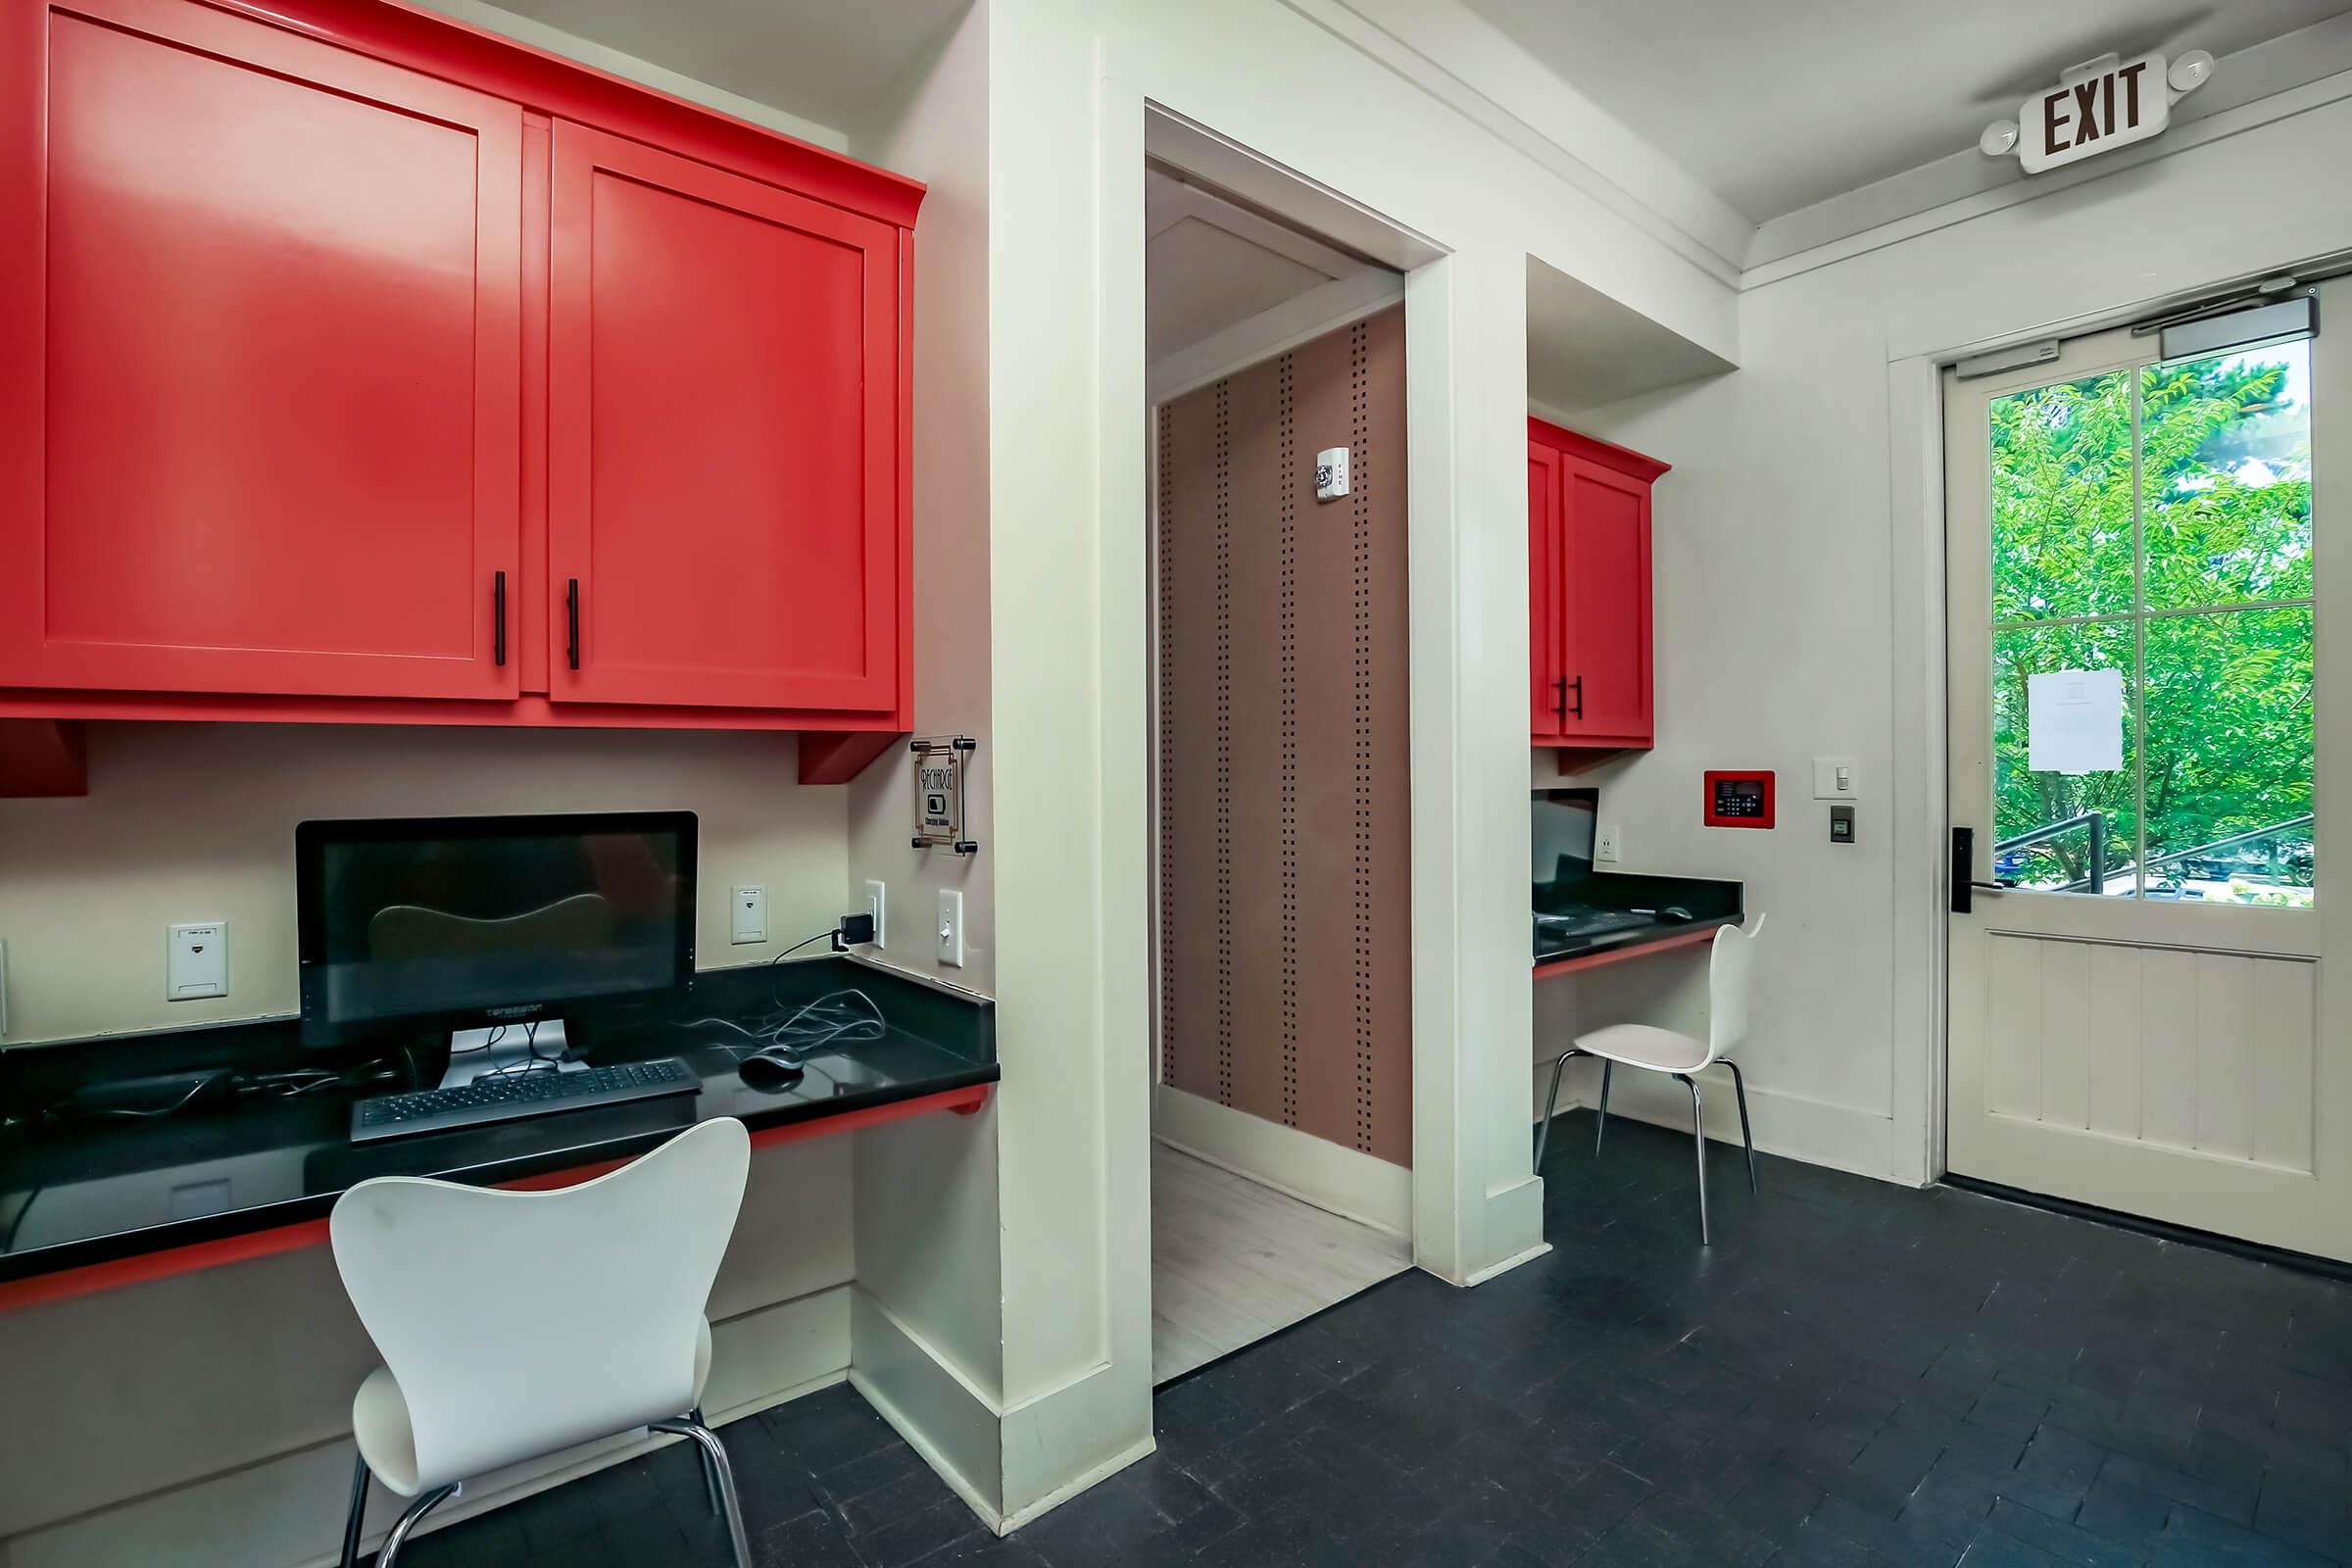 a kitchen with a red door